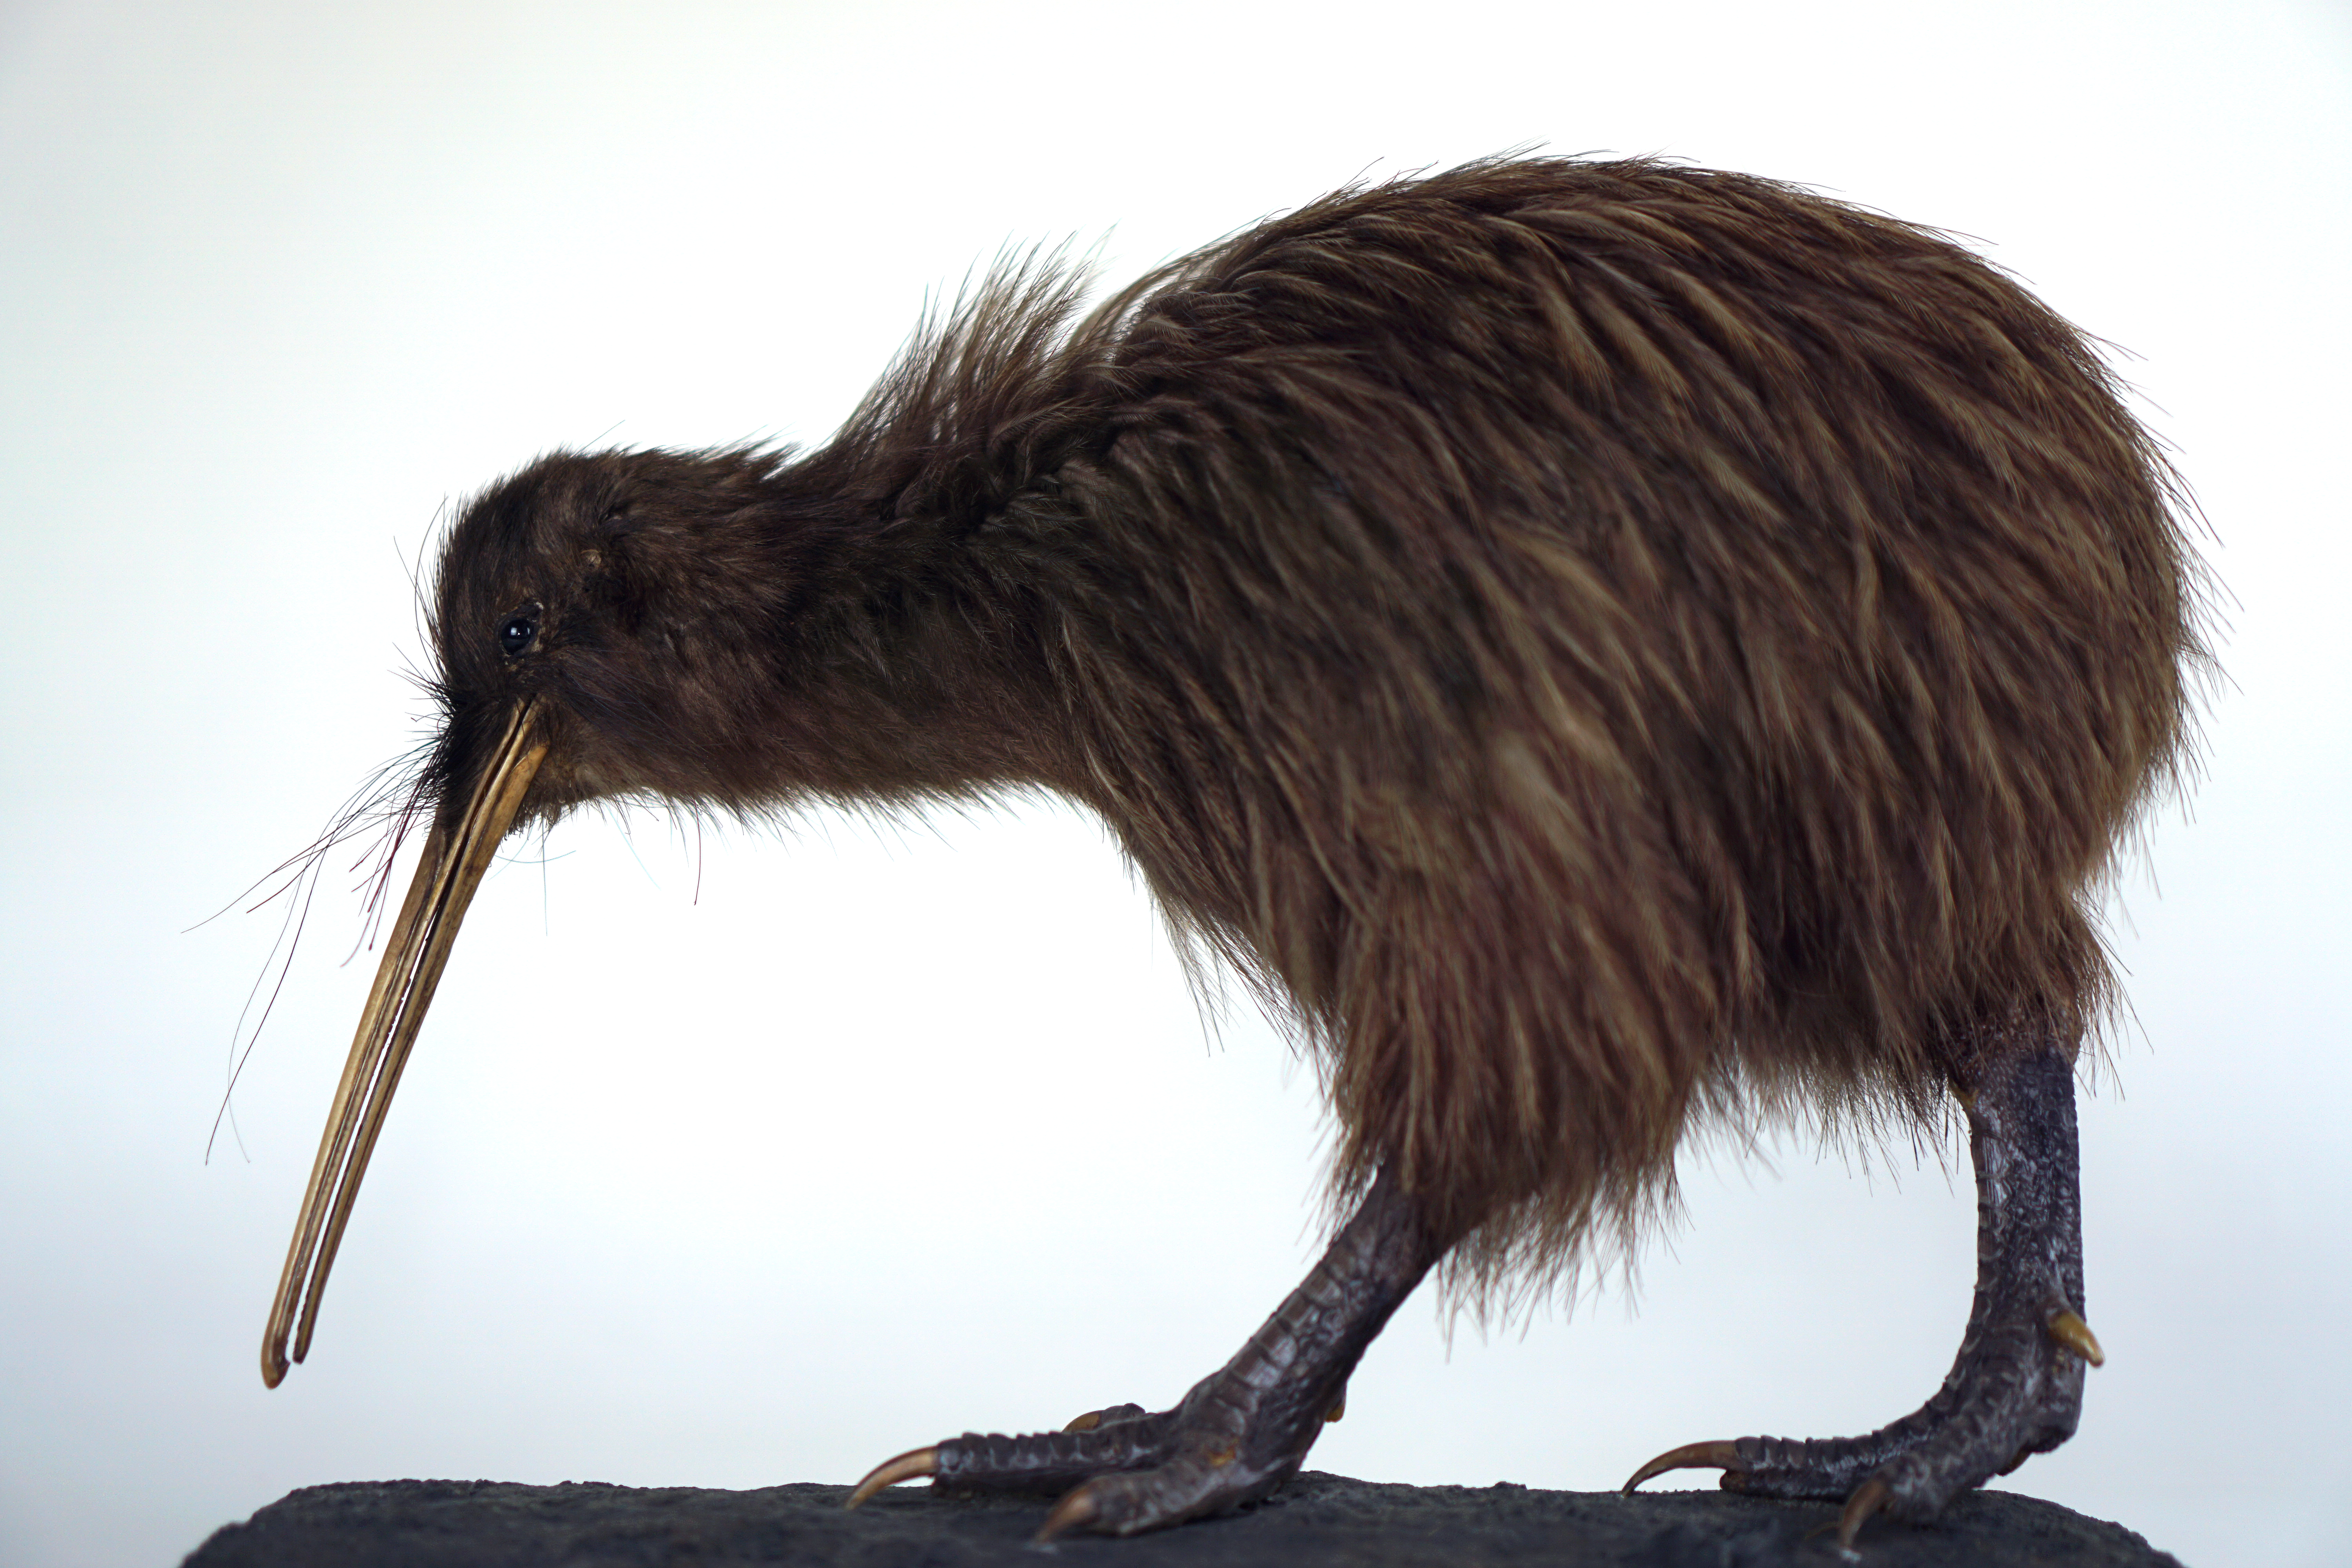 A taxidermy kiwi.